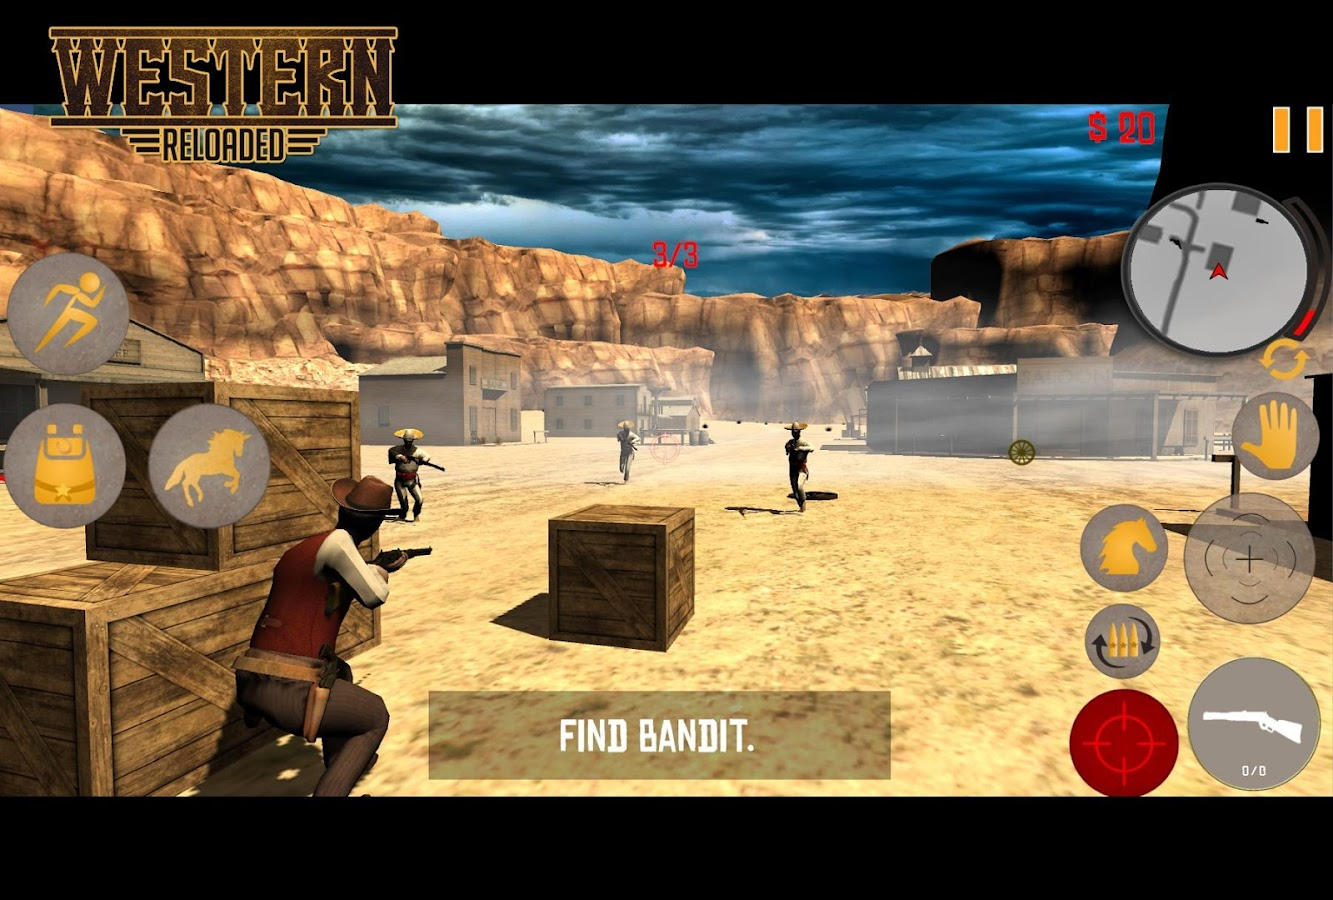 R Western Dead Reloaded (Sandbox styled Action)- screenshot